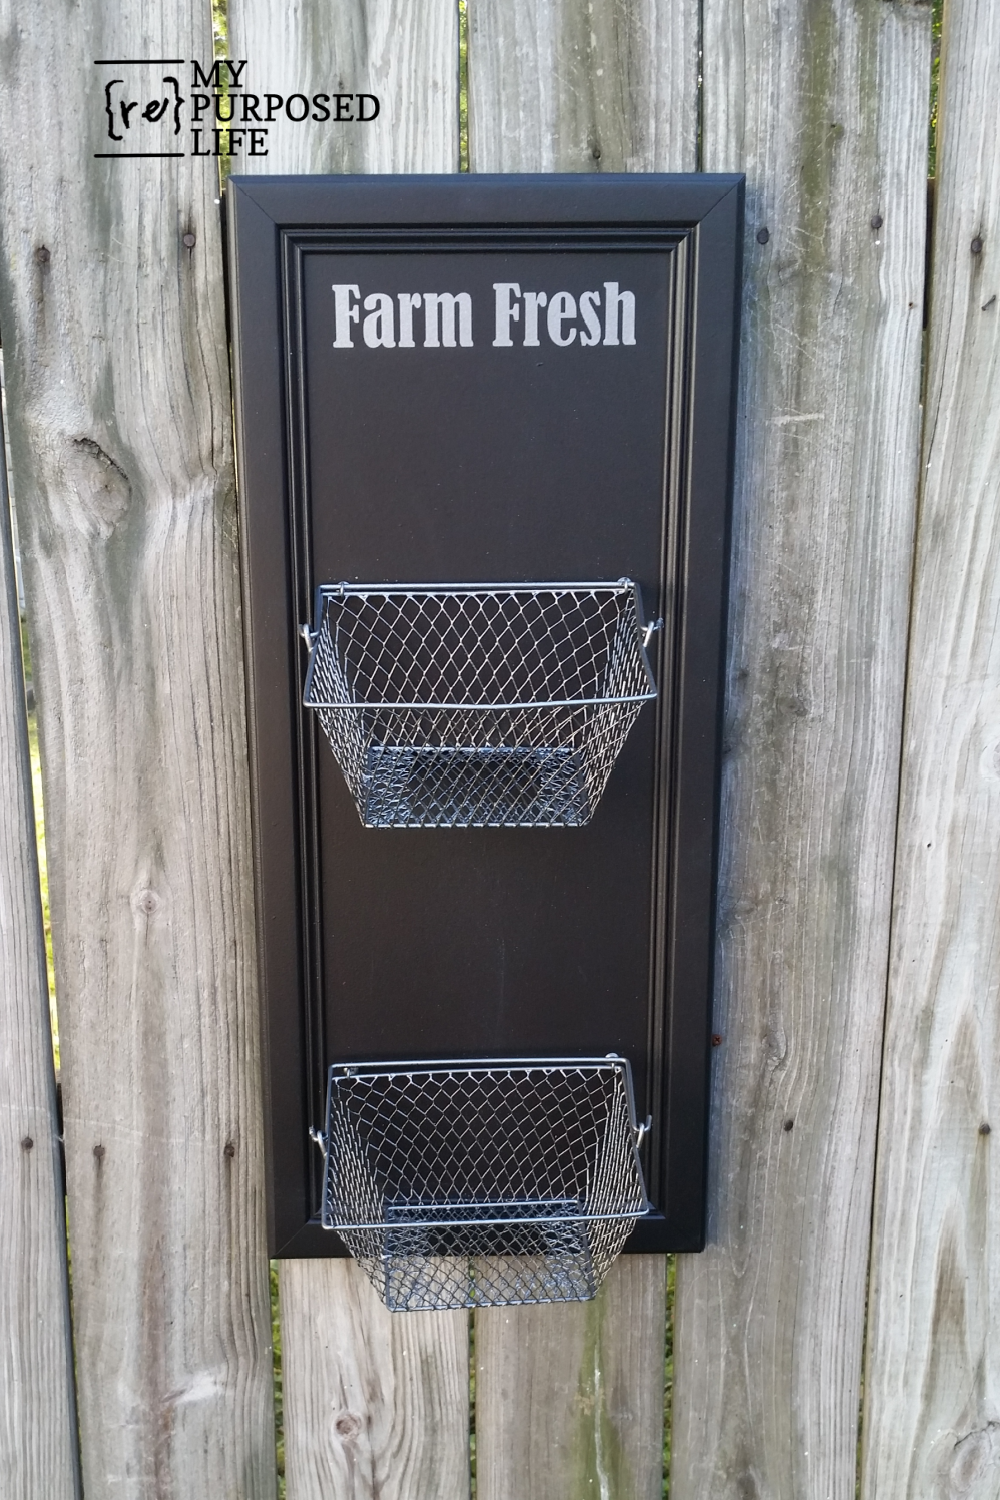 How to make a vegetable bin out of a repurposed cabinet door. Make your own project in an afternoon to hold produce & vegetables. Customize it to your own needs. So many options! #MyRepurposedLife #repurposed #cabinetdoor #cupboardoor #vegetablebin #diy #easy #project via @repurposedlife